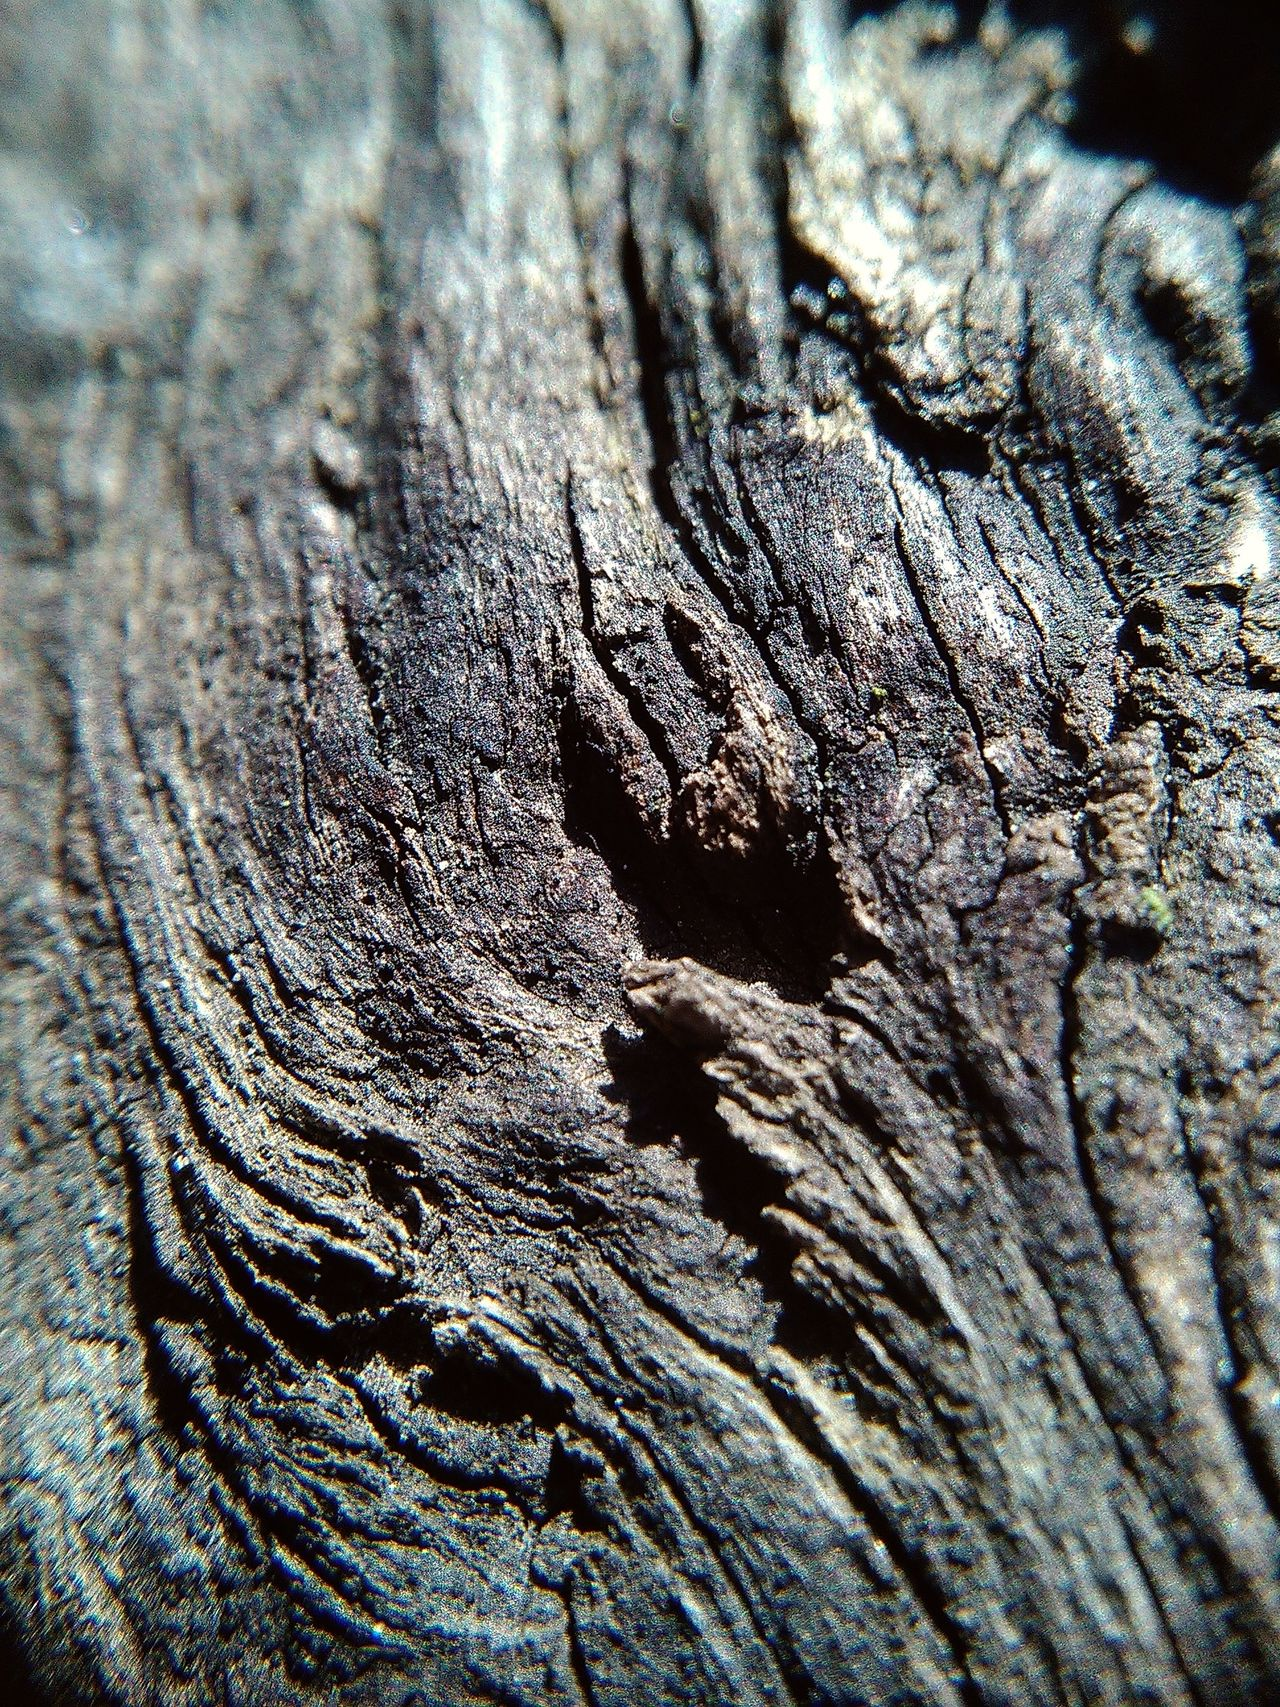 Backgrounds Black & White Black And White Close Up Nature Close Up Texture Close-up Grey Greyscale Macro Macro Nature Nature Old Tree Pattern Surface Level Textured  Tree Trunk Wood - Material Wood Surface Wood Texture Wood Texture Background Wooden Surface Wooden Texture